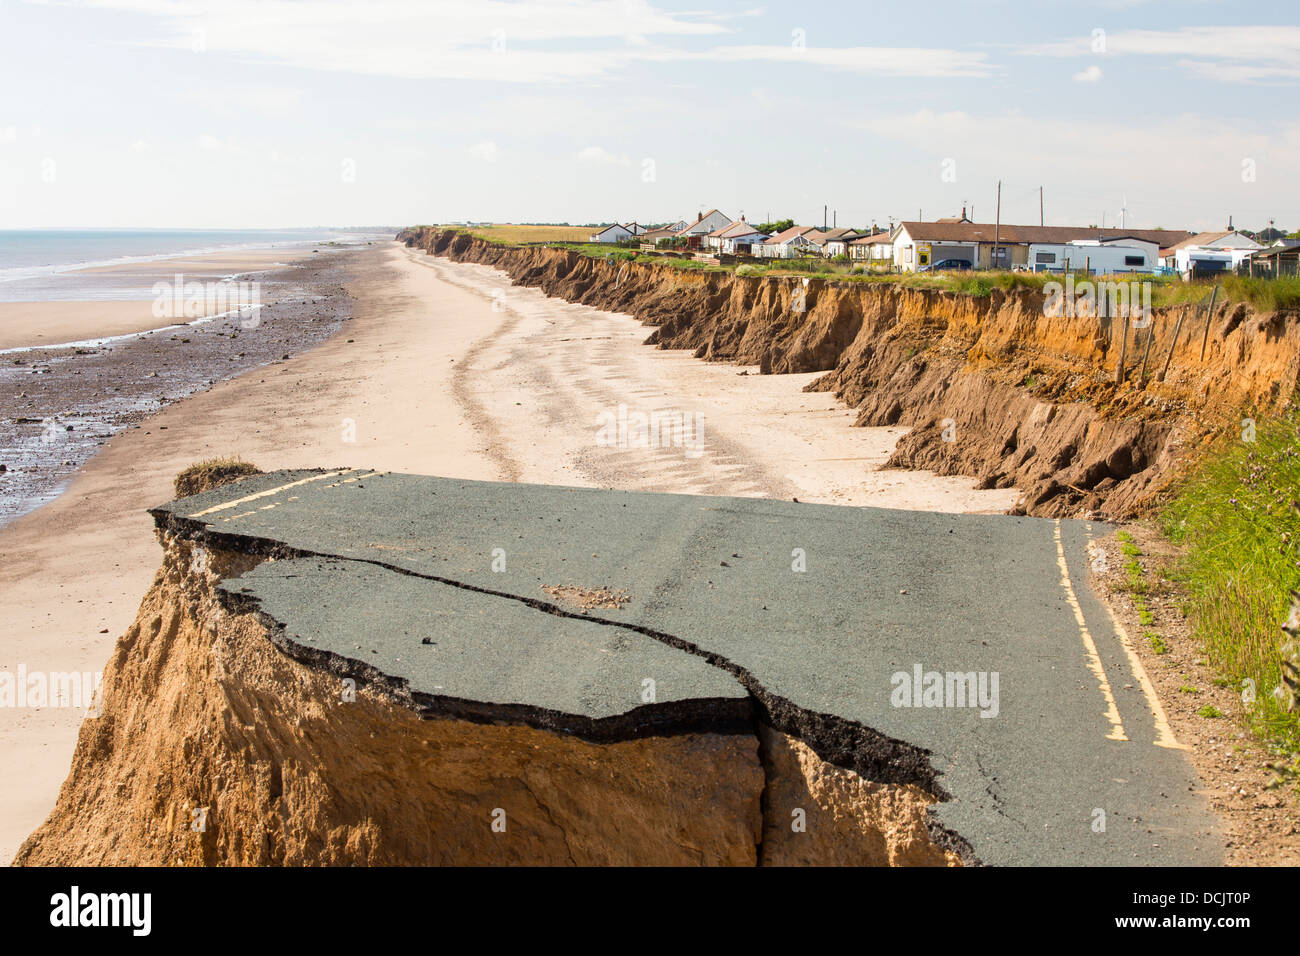 A collapsed coastal road at between Skipsea and Ulrome on Yorkshires East Coast, near Skipsea, UK. - Stock Image